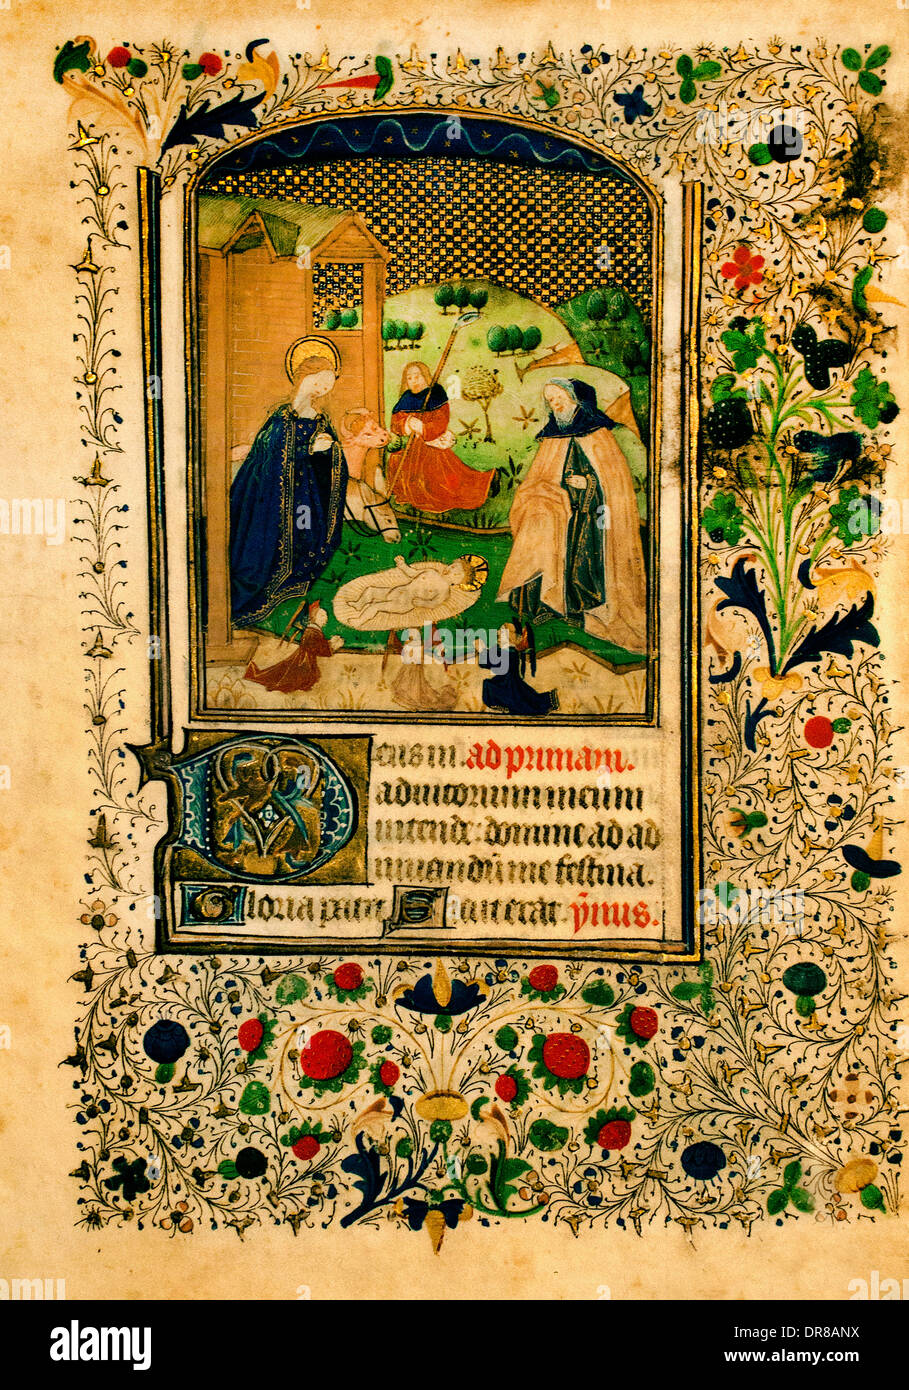 sheet from a set of seven leaves of a book of hours Flanders (Bruges) Belgium 1450 Belgian Flemish - Stock Image